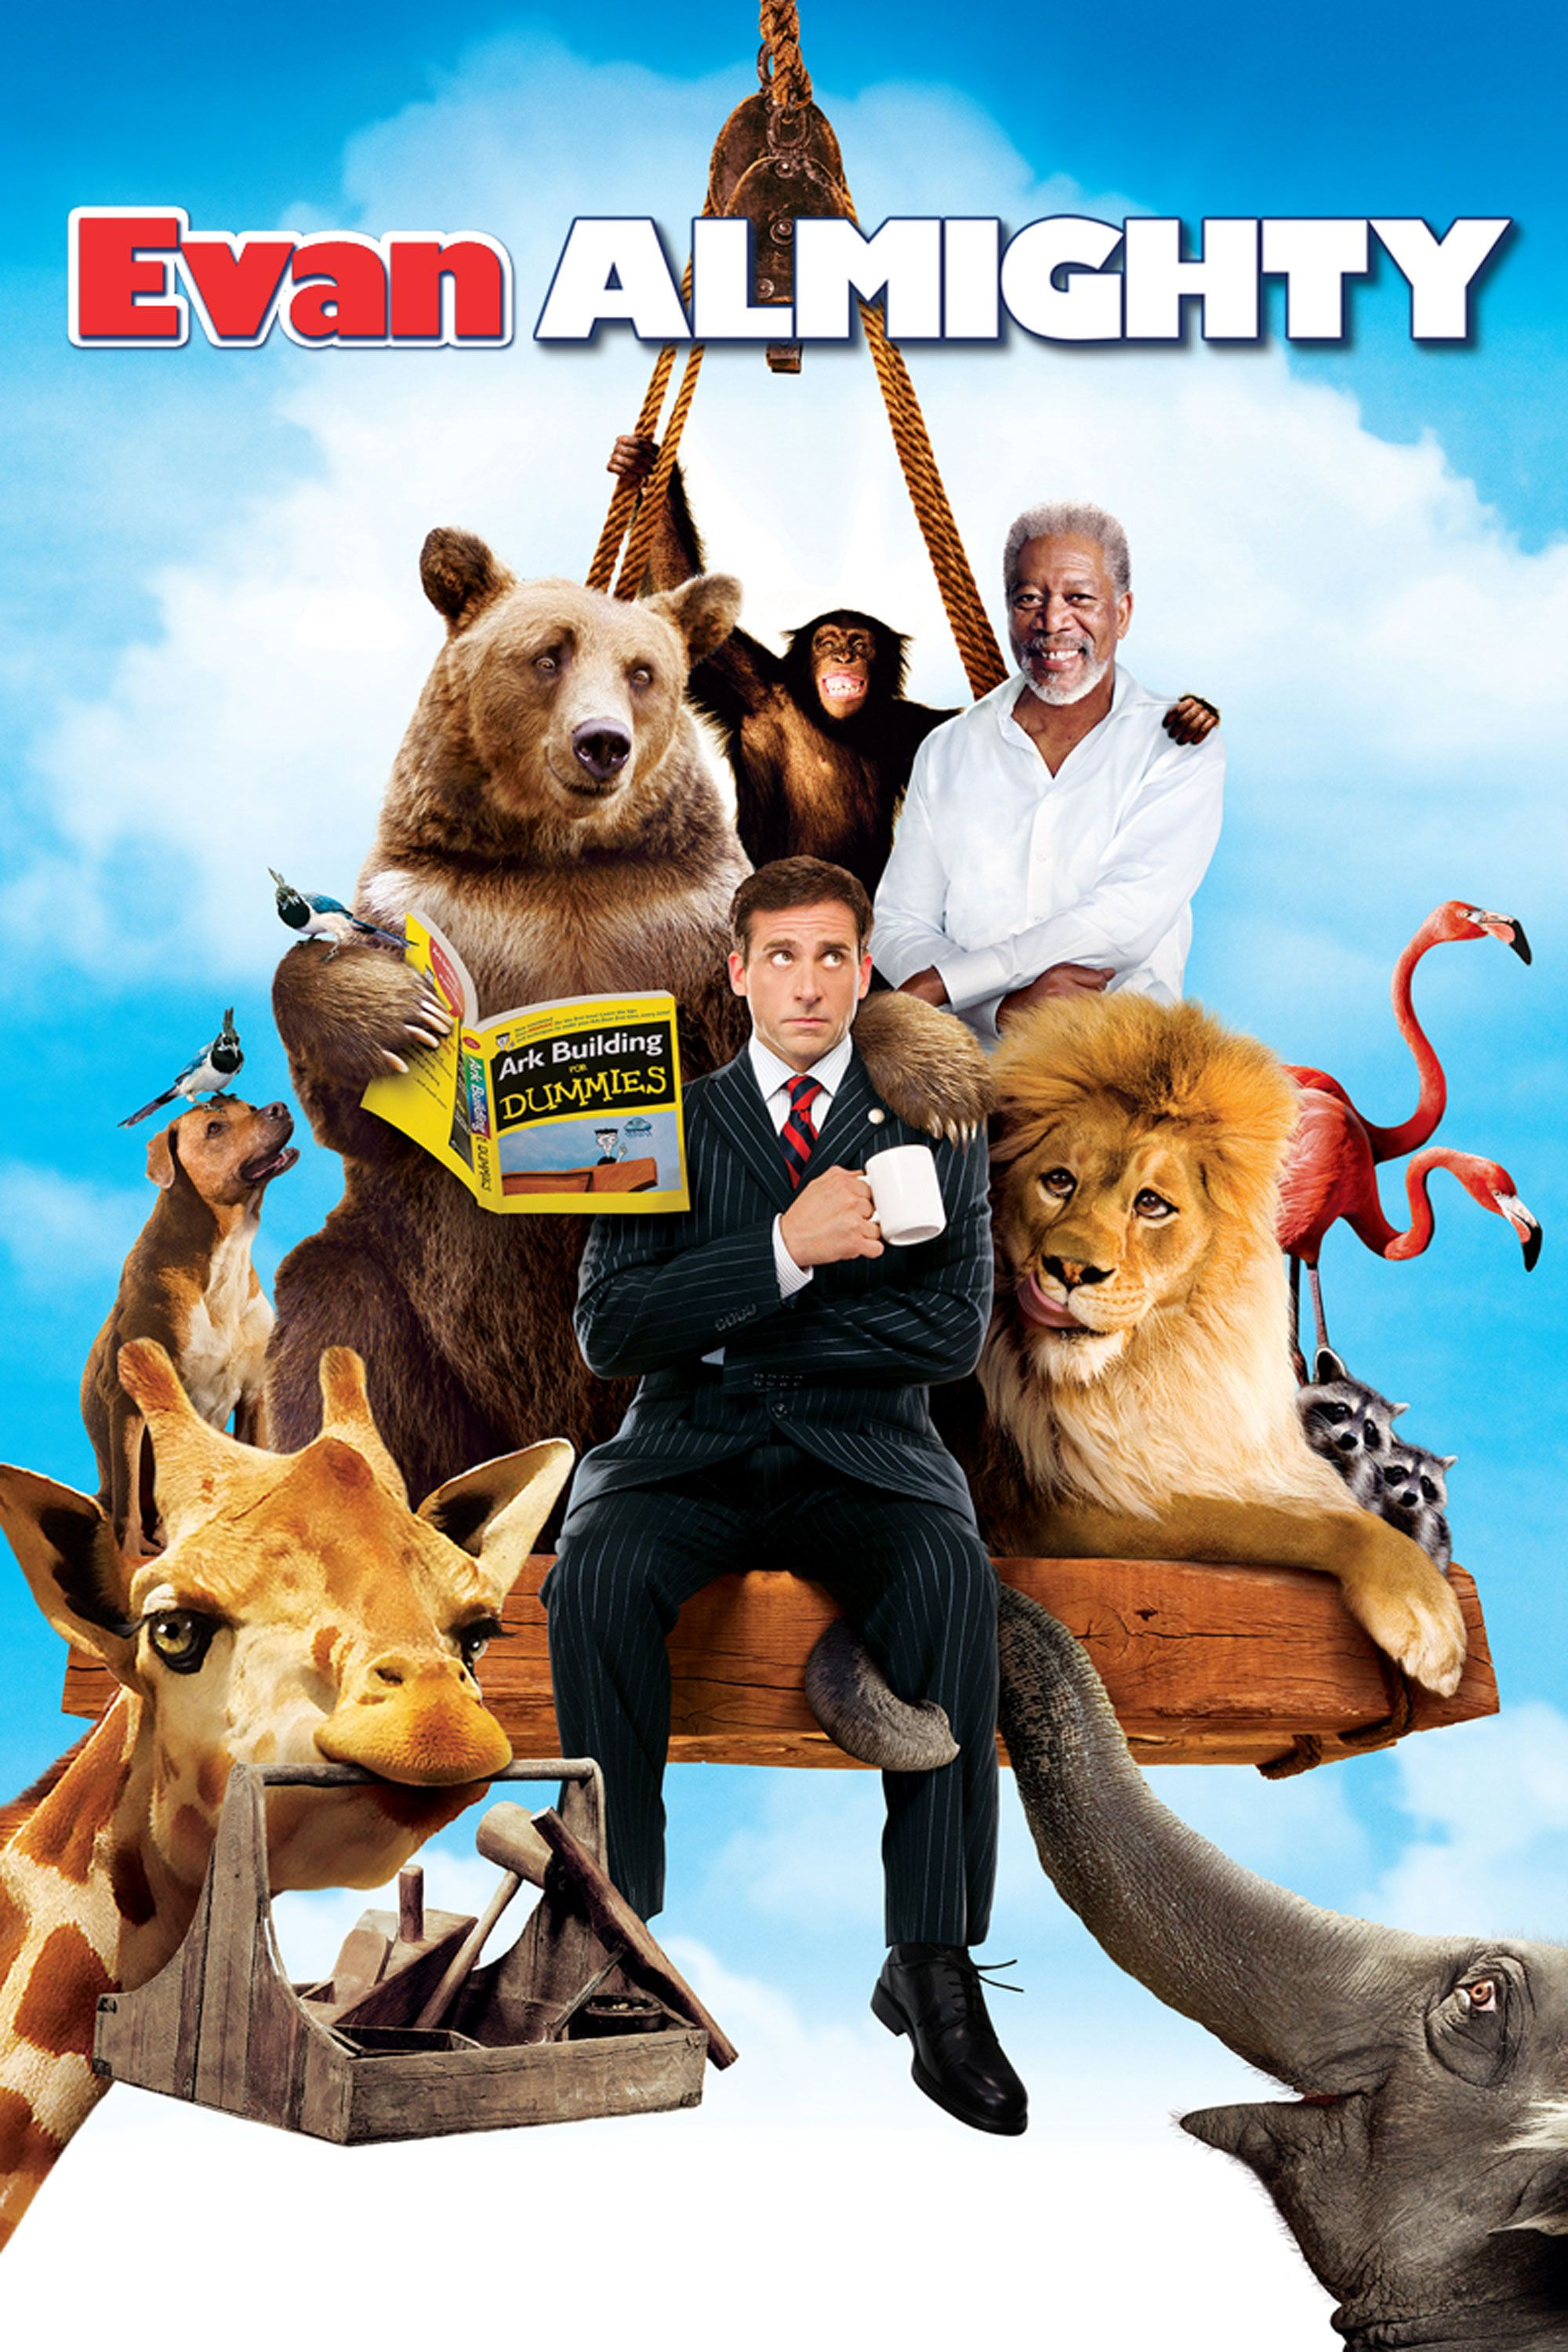 bruce almighty full movie online free 123movies